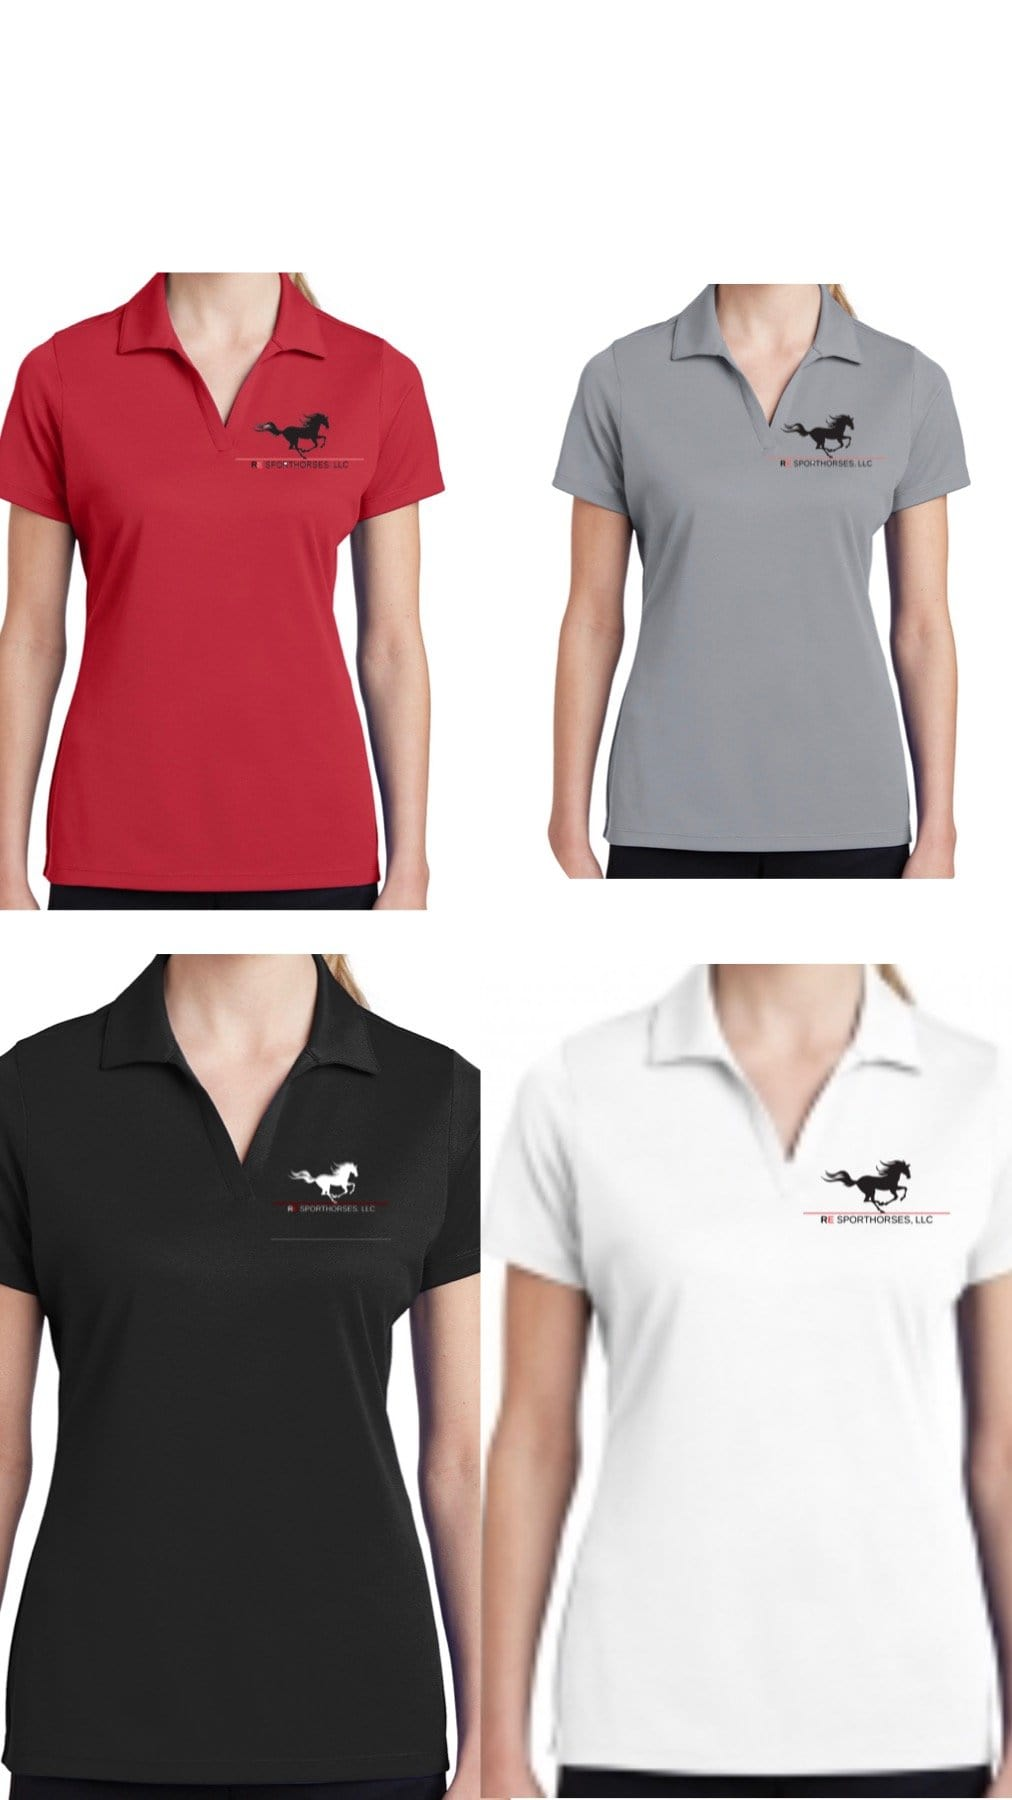 Equestrian Team Apparel Custom Team Shirts RE Sporthorses, LLC Short Sleeve Polo equestrian team apparel online tack store mobile tack store custom farm apparel custom show stable clothing equestrian lifestyle horse show clothing riding clothes horses equestrian tack store